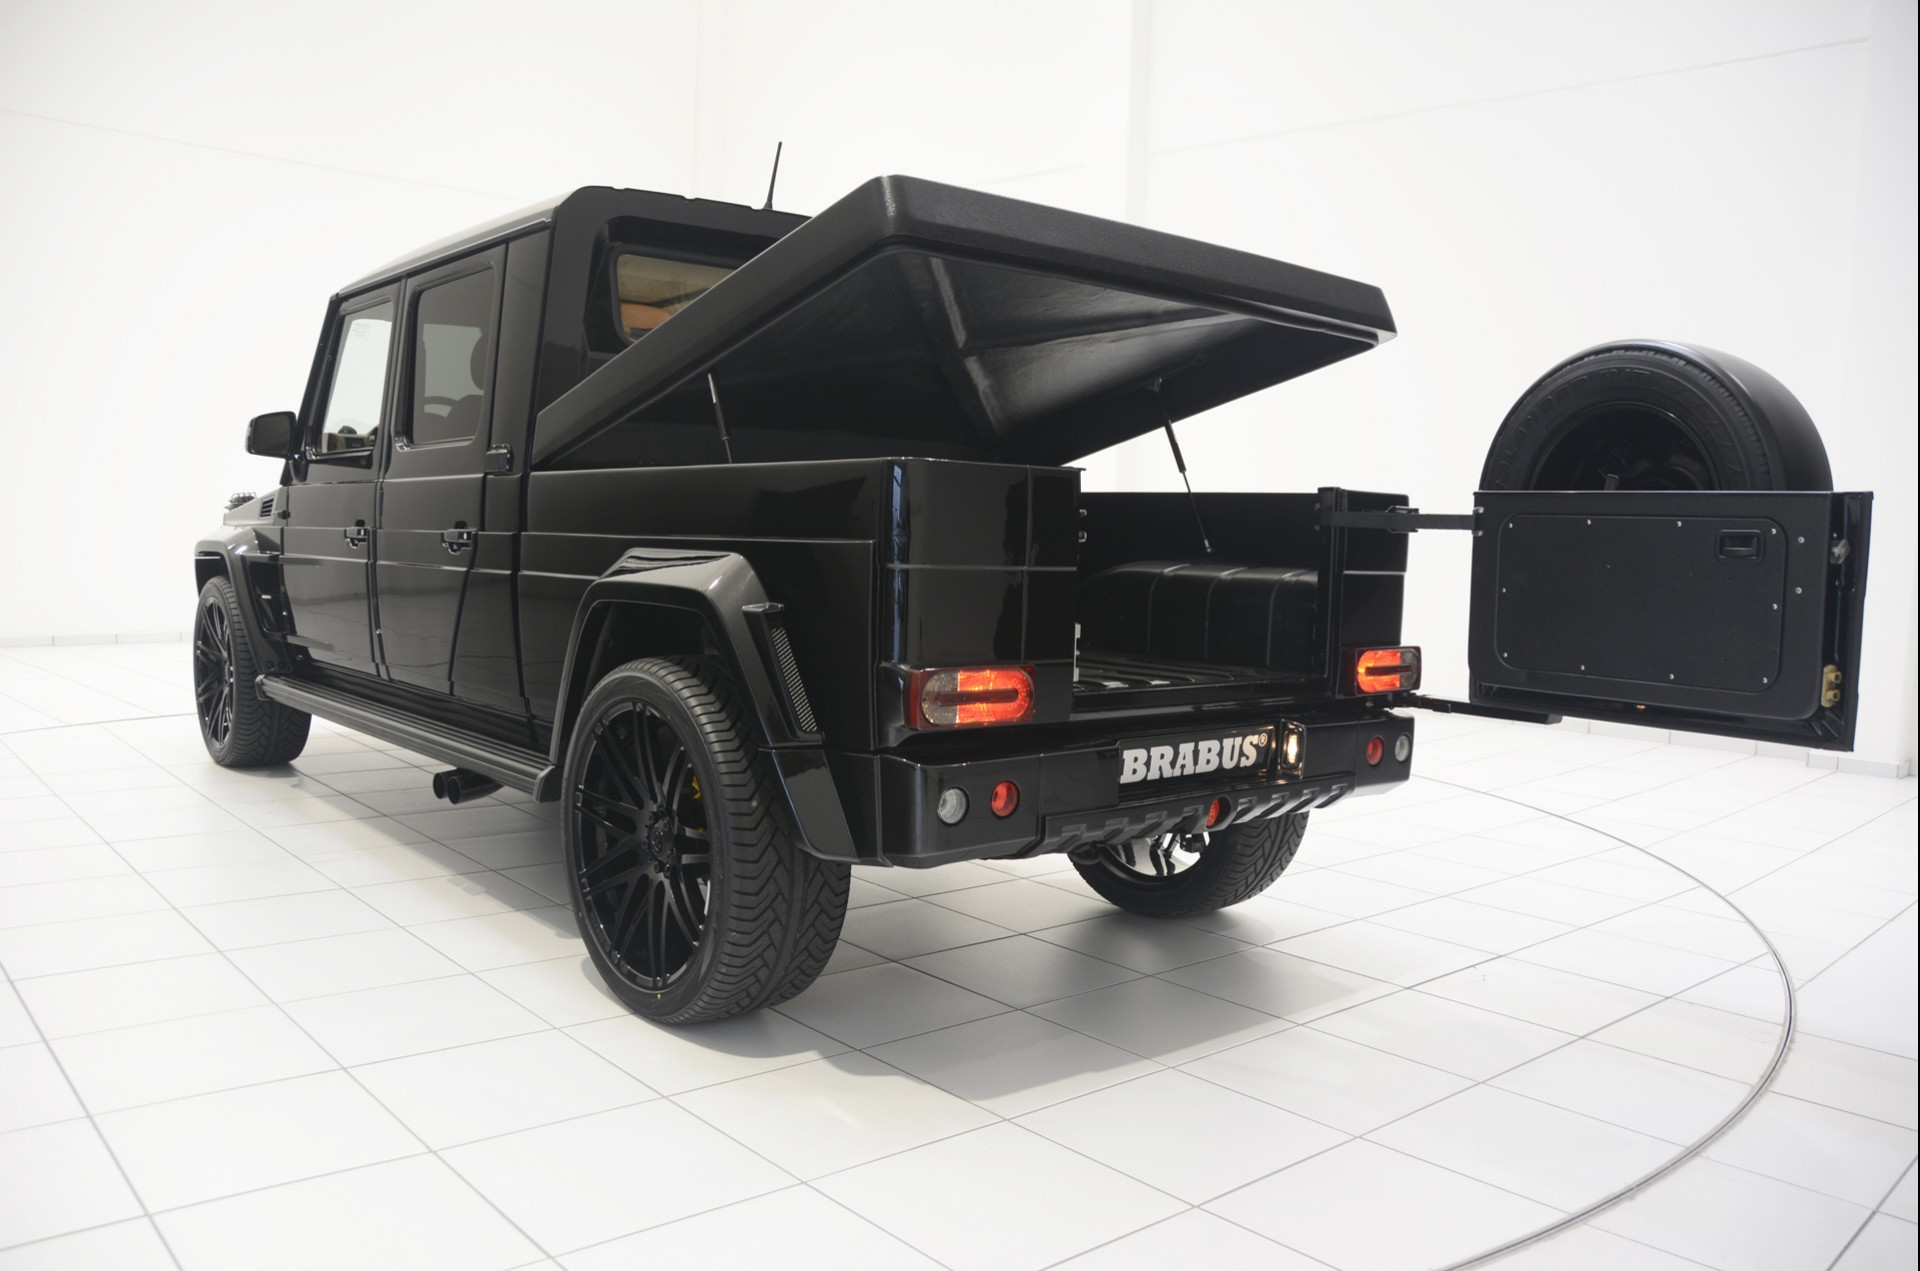 brabus g500 xxl pickup truck is very large wide and cool